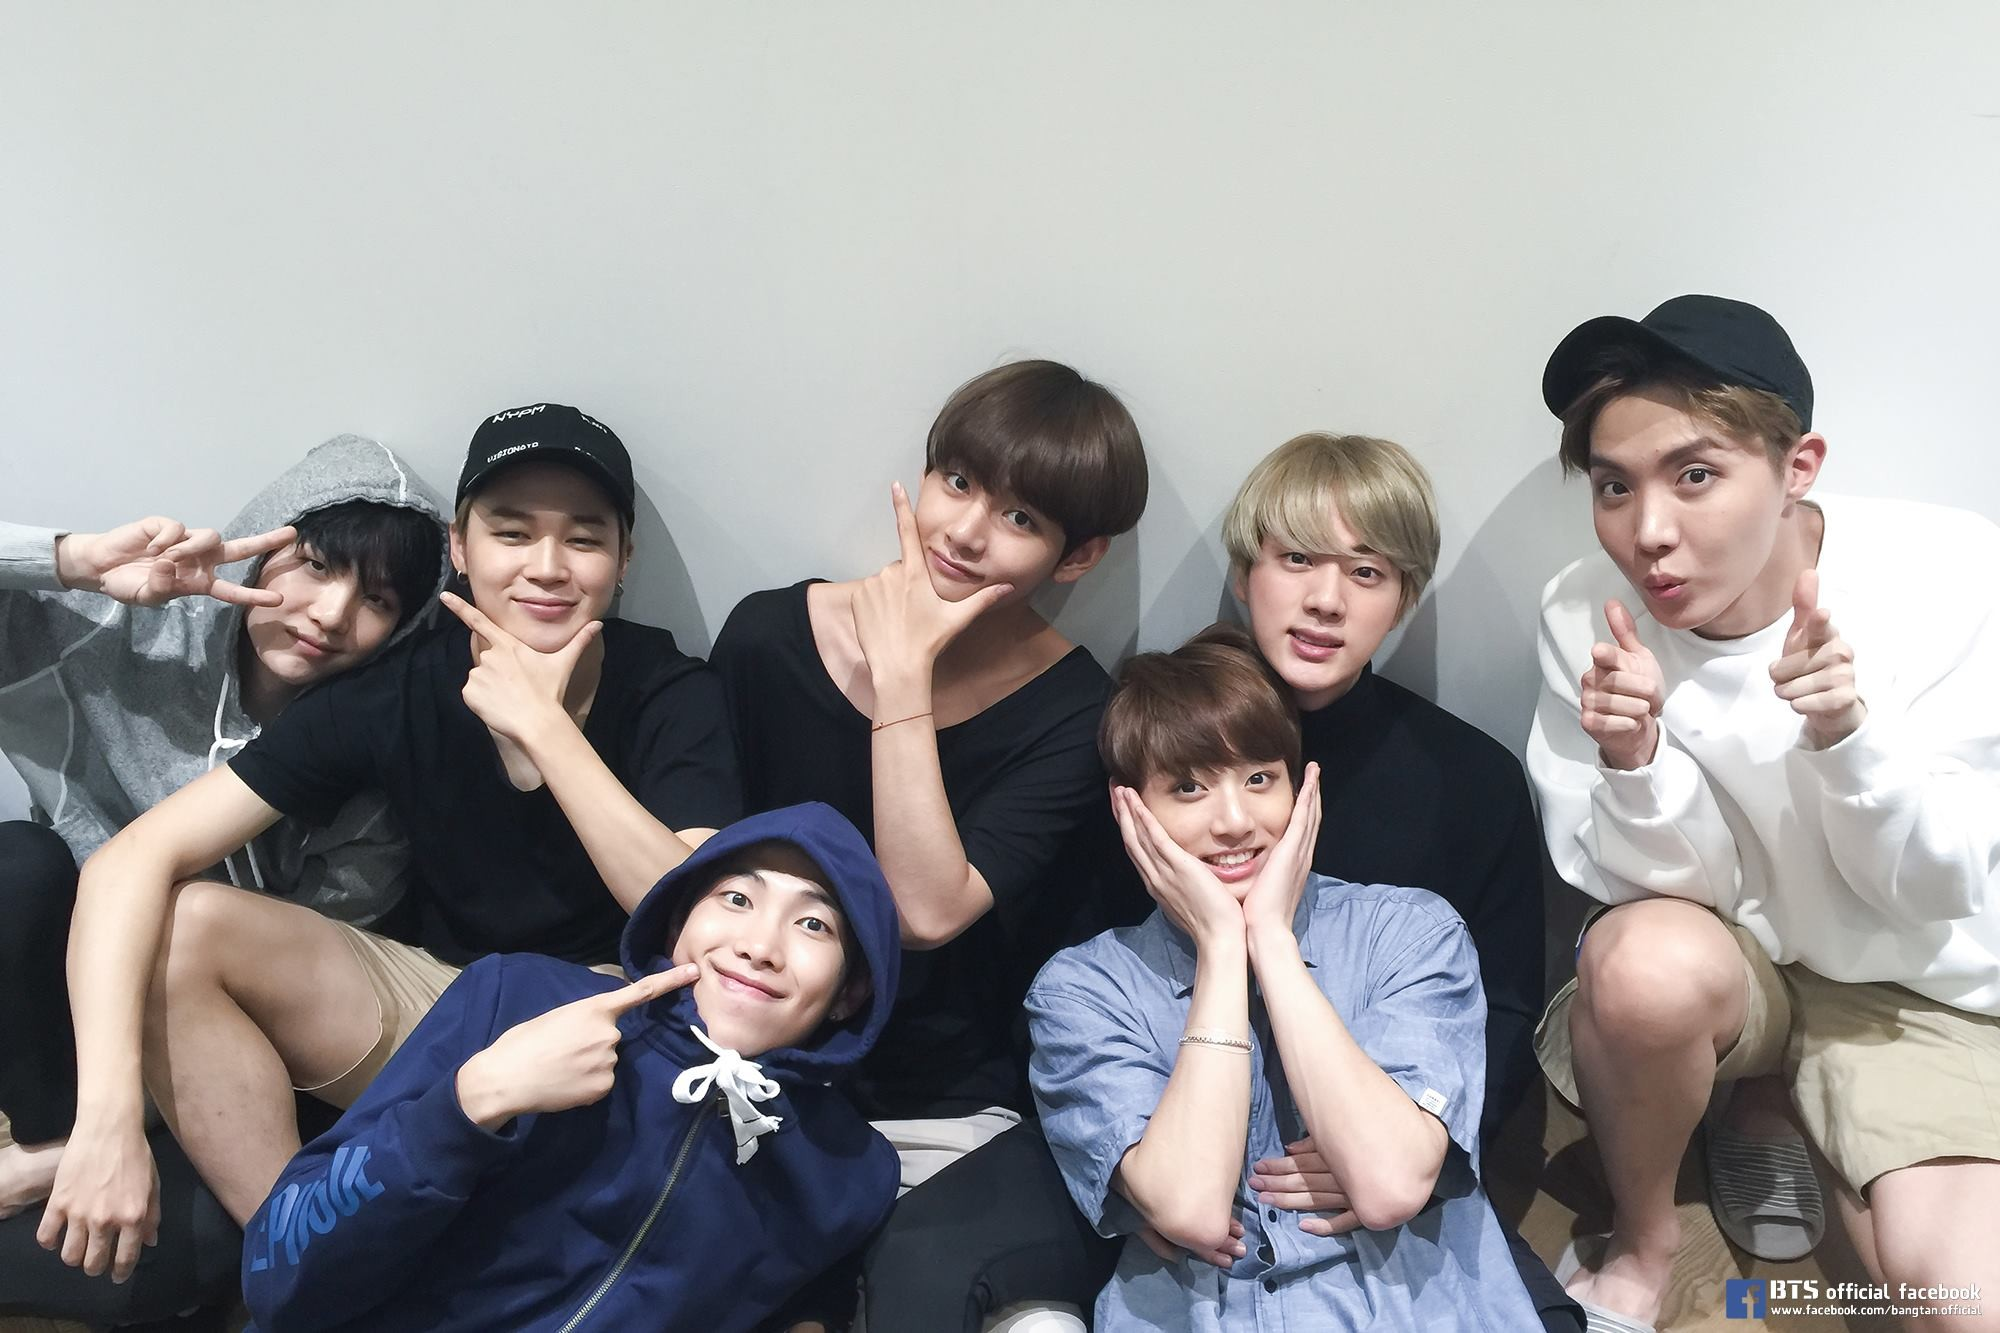 Bts Smiling Wallpaper Windows Mode